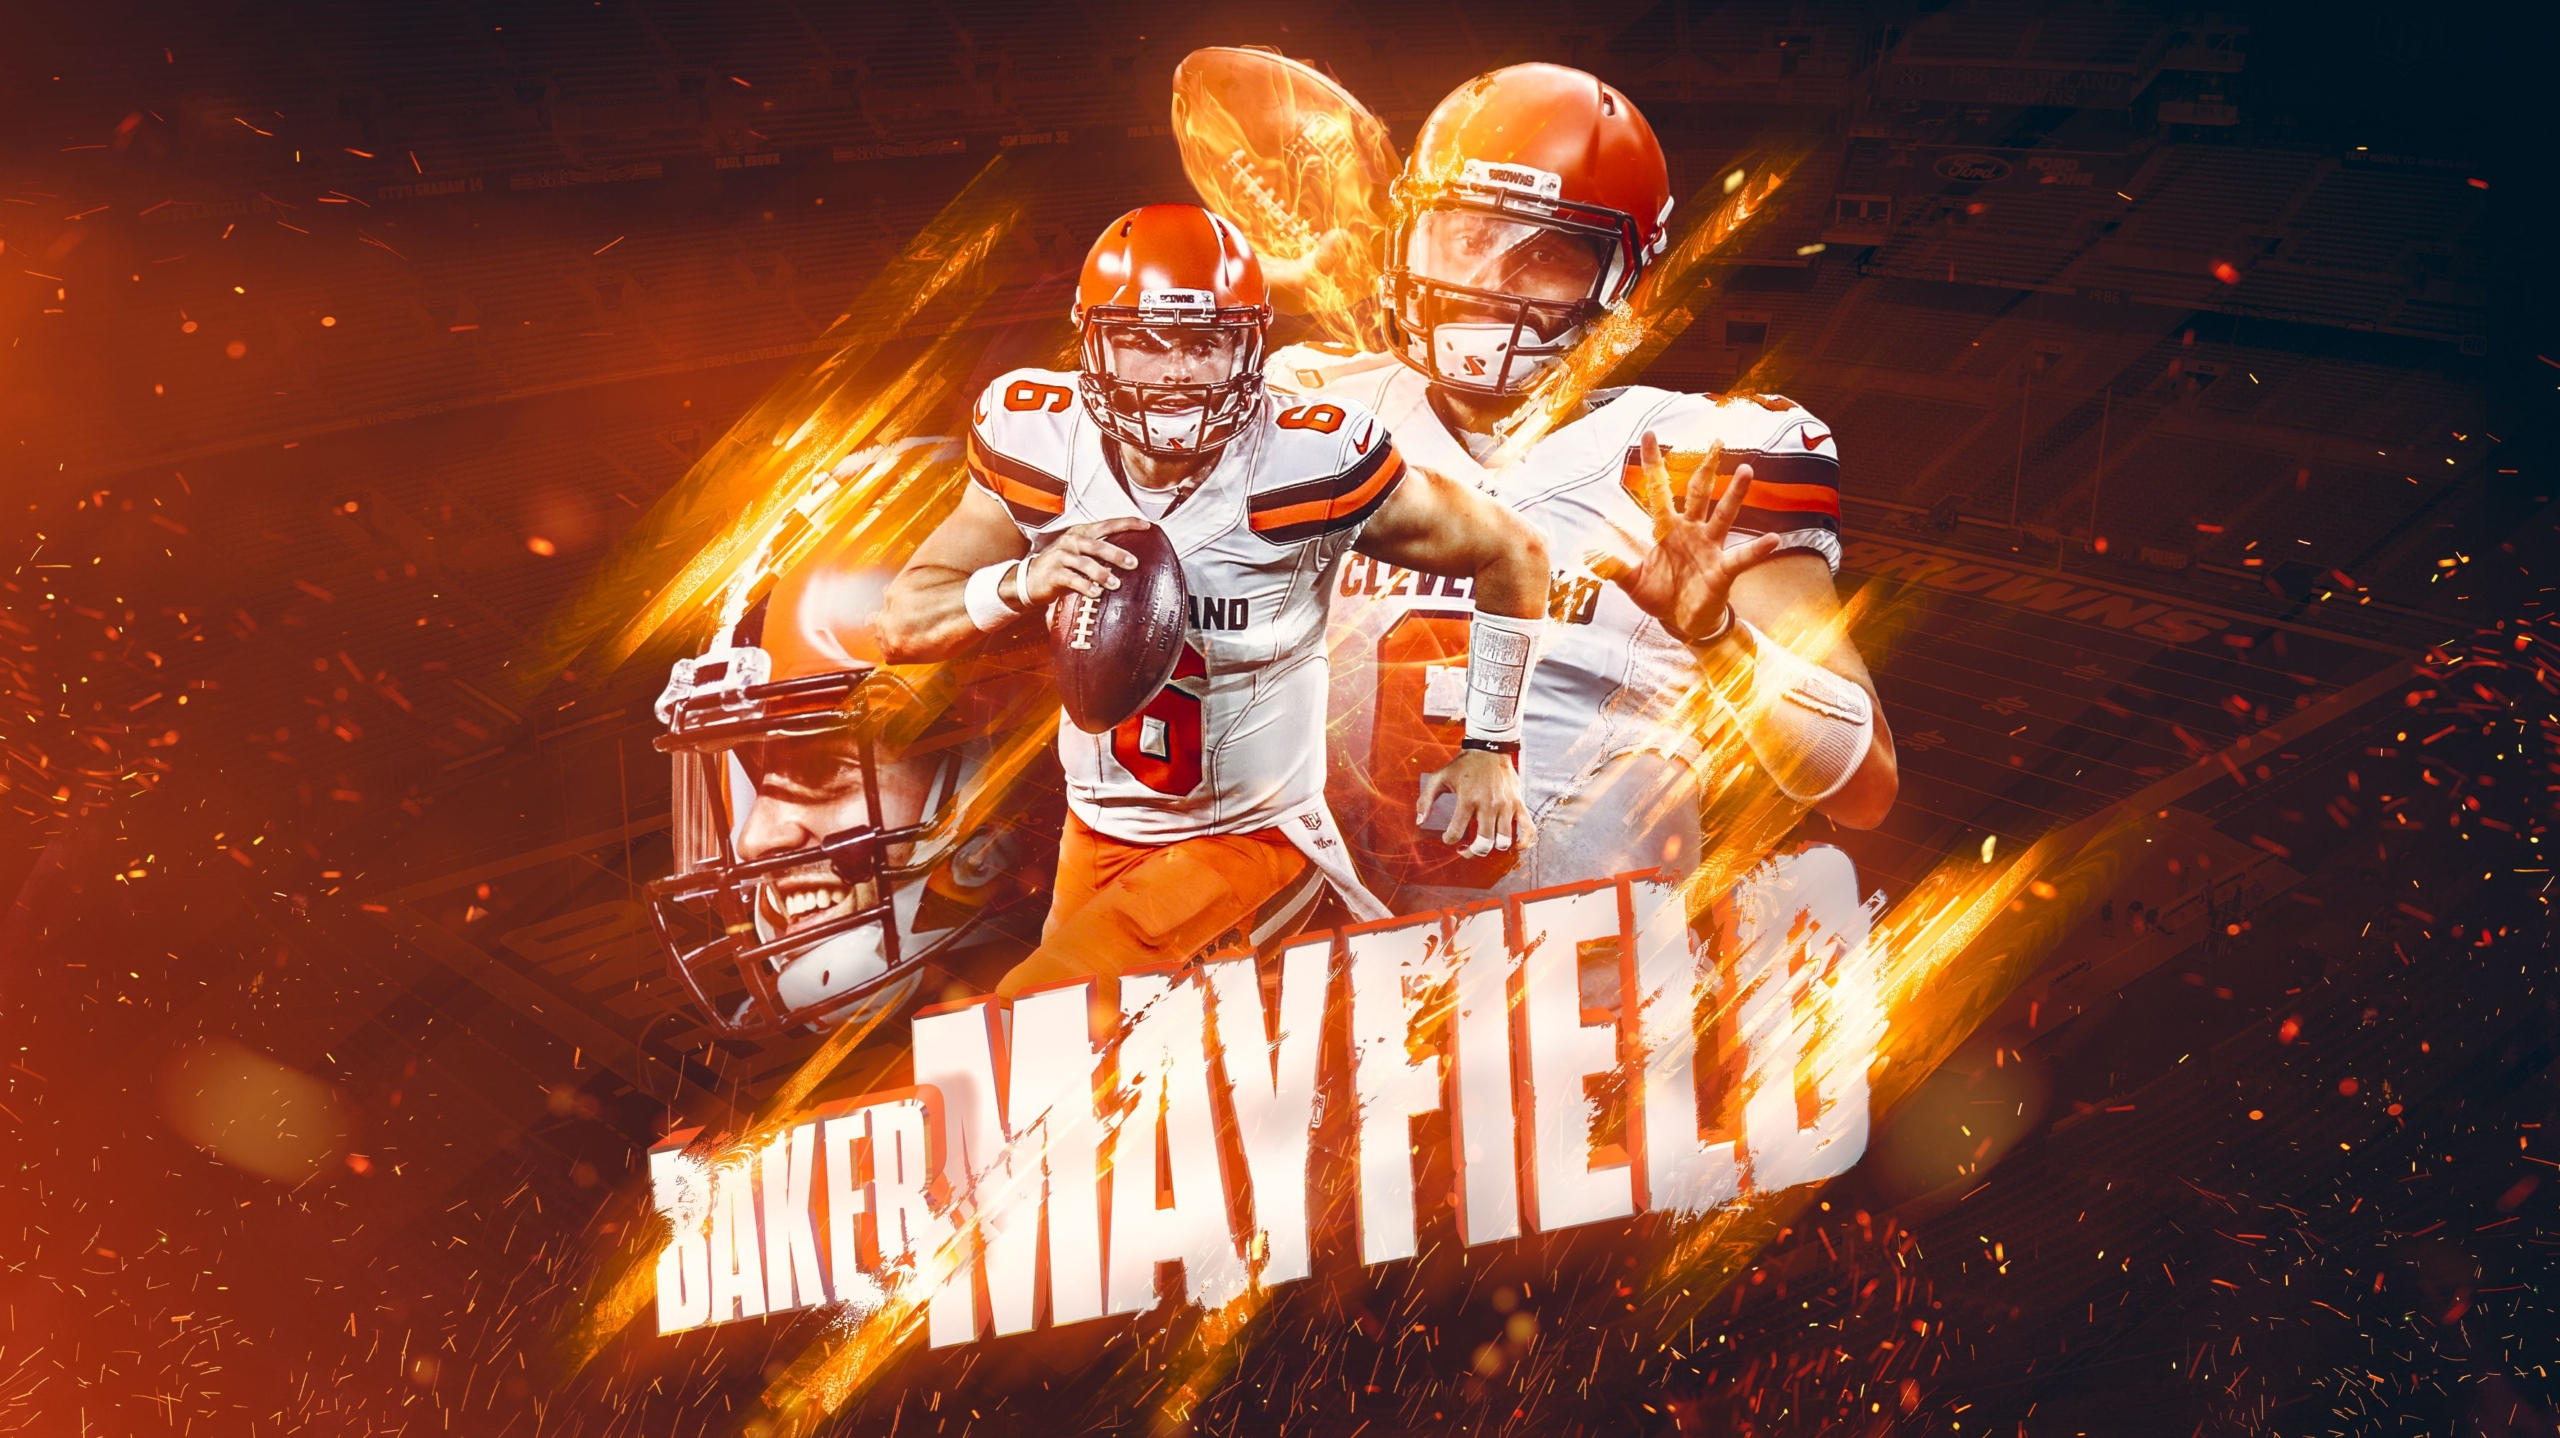 Baker Mayfield Wallpaper – The Best background For Country Style Decor